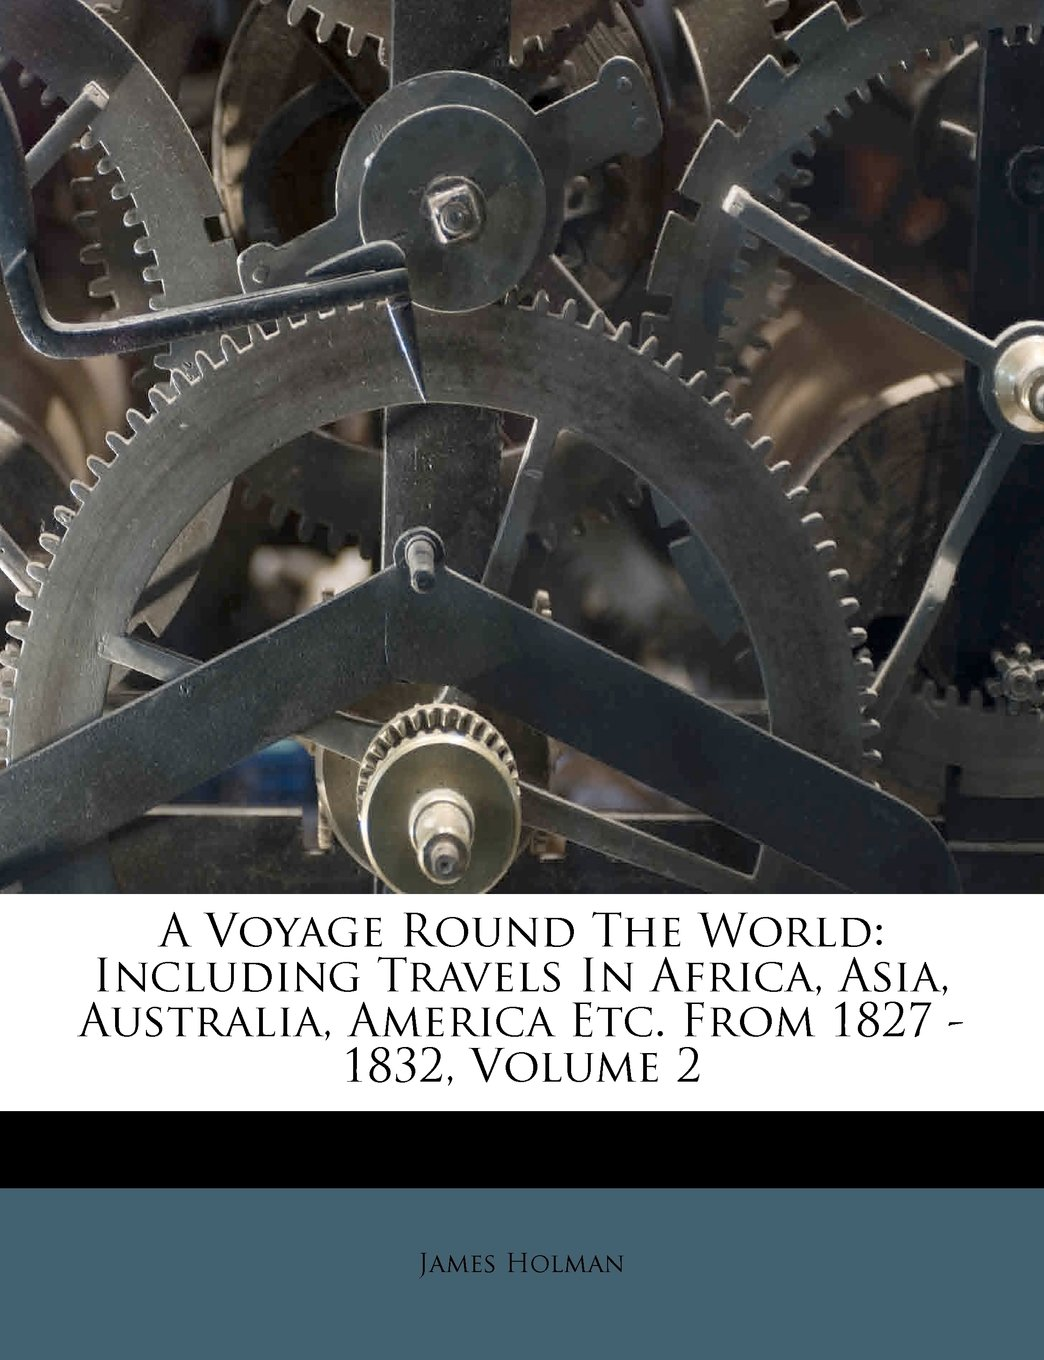 A Voyage Round The World: Including Travels In Africa, Asia, Australia, America Etc. From 1827 - 1832, Volume 2 PDF